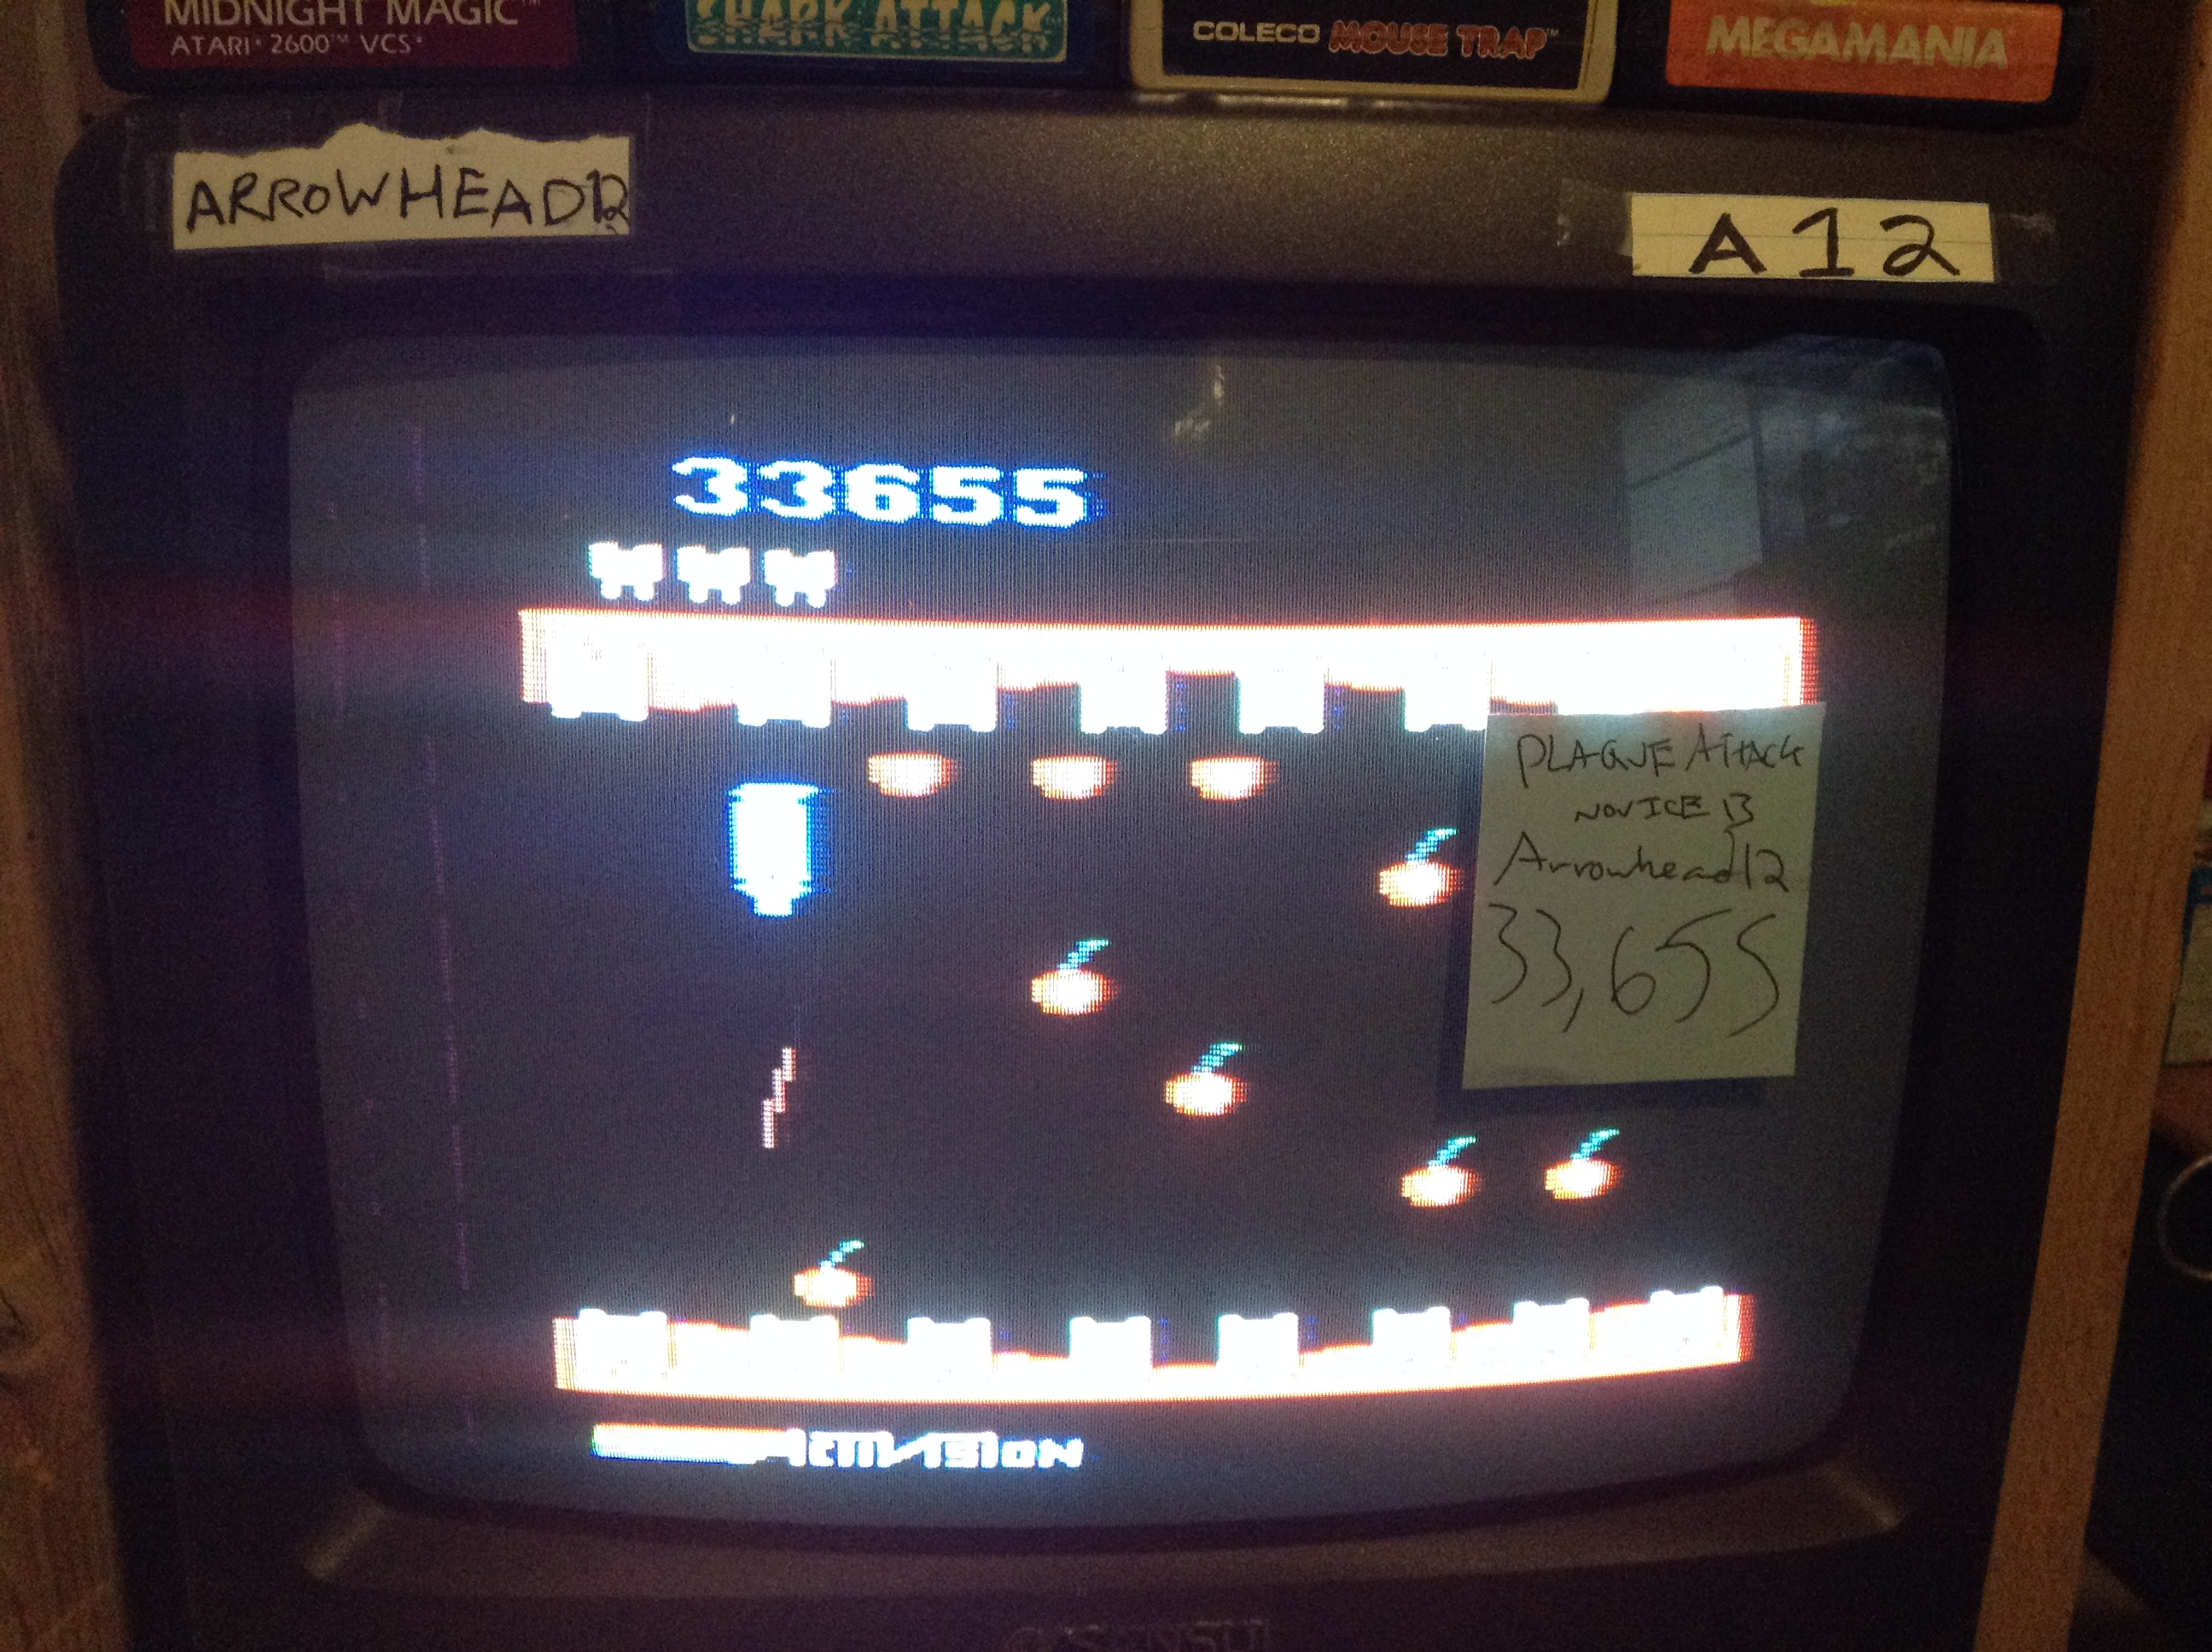 Arrowhead12: Plaque Attack (Atari 2600 Novice/B) 33,655 points on 2019-05-05 23:42:35